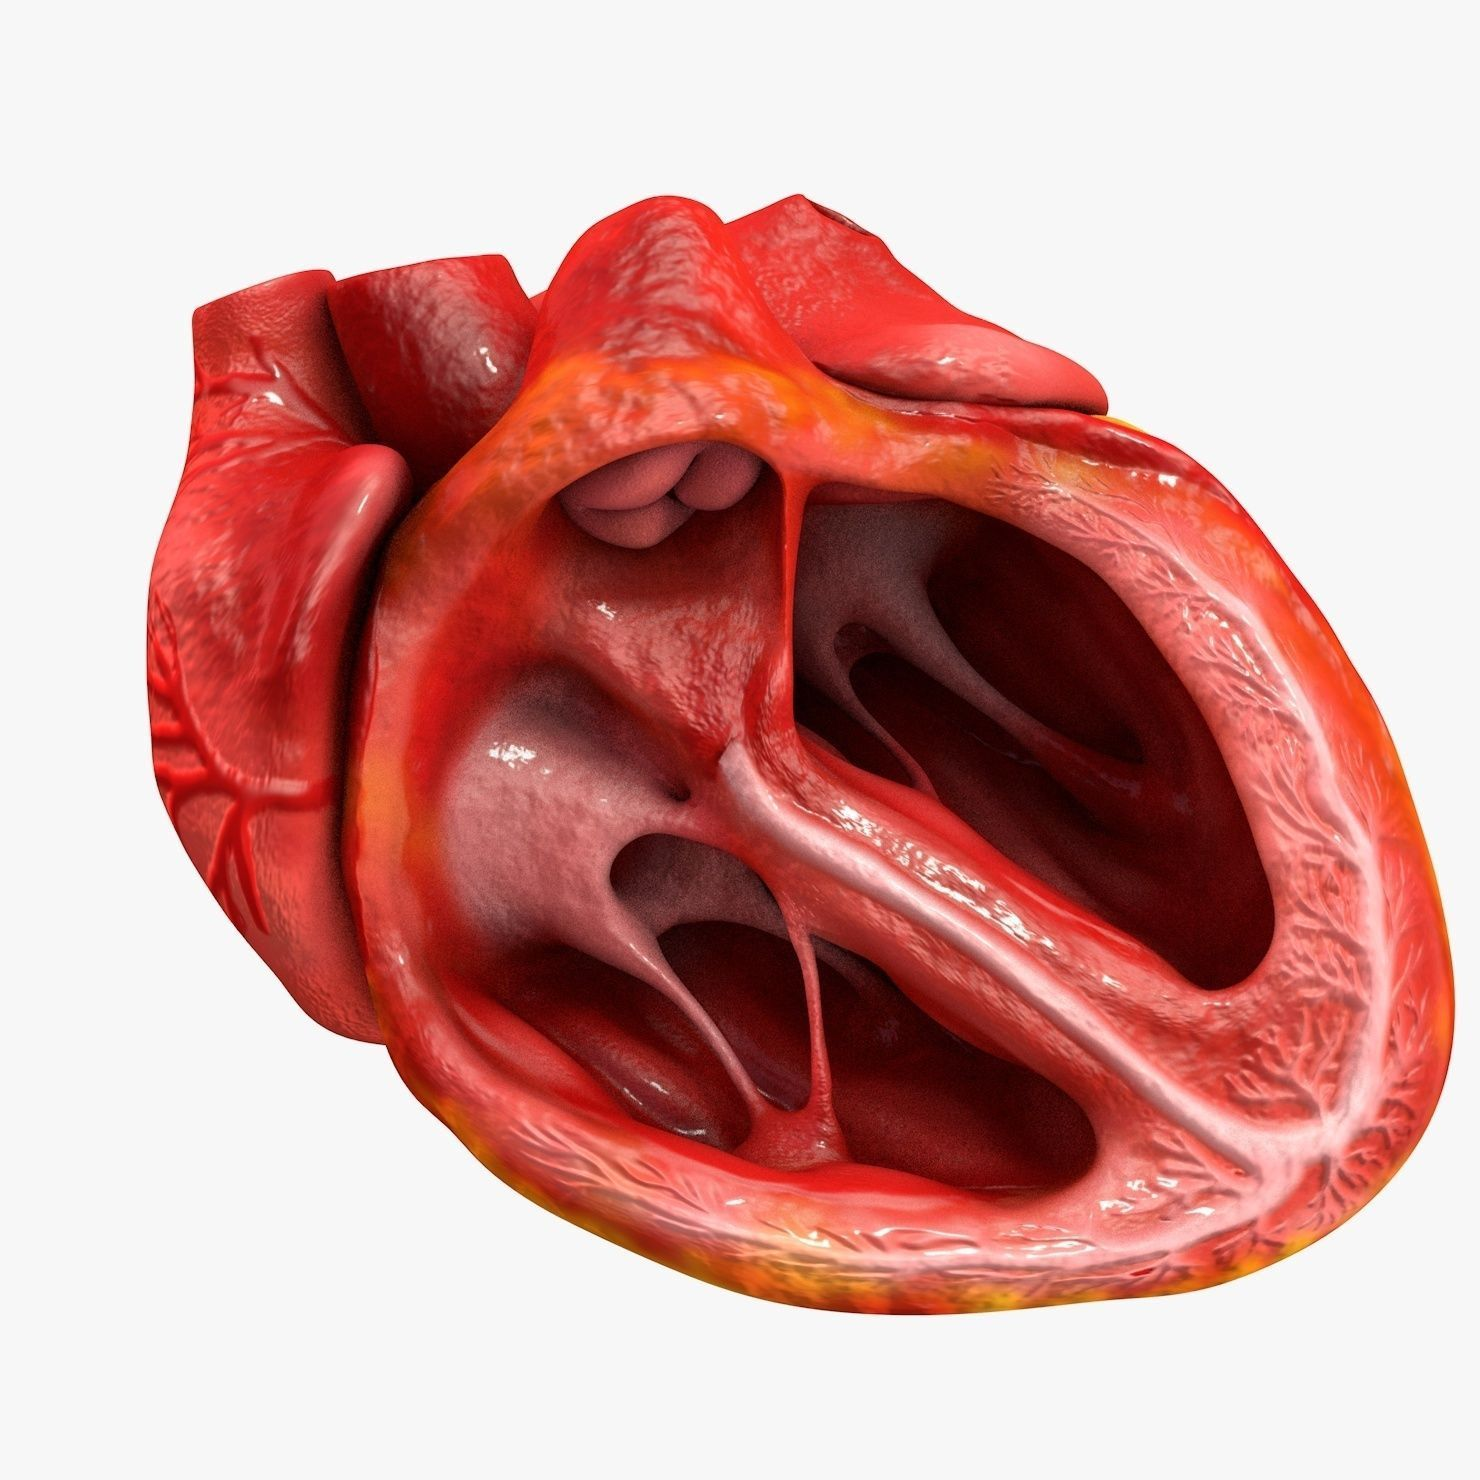 Animated human heart - photo#54